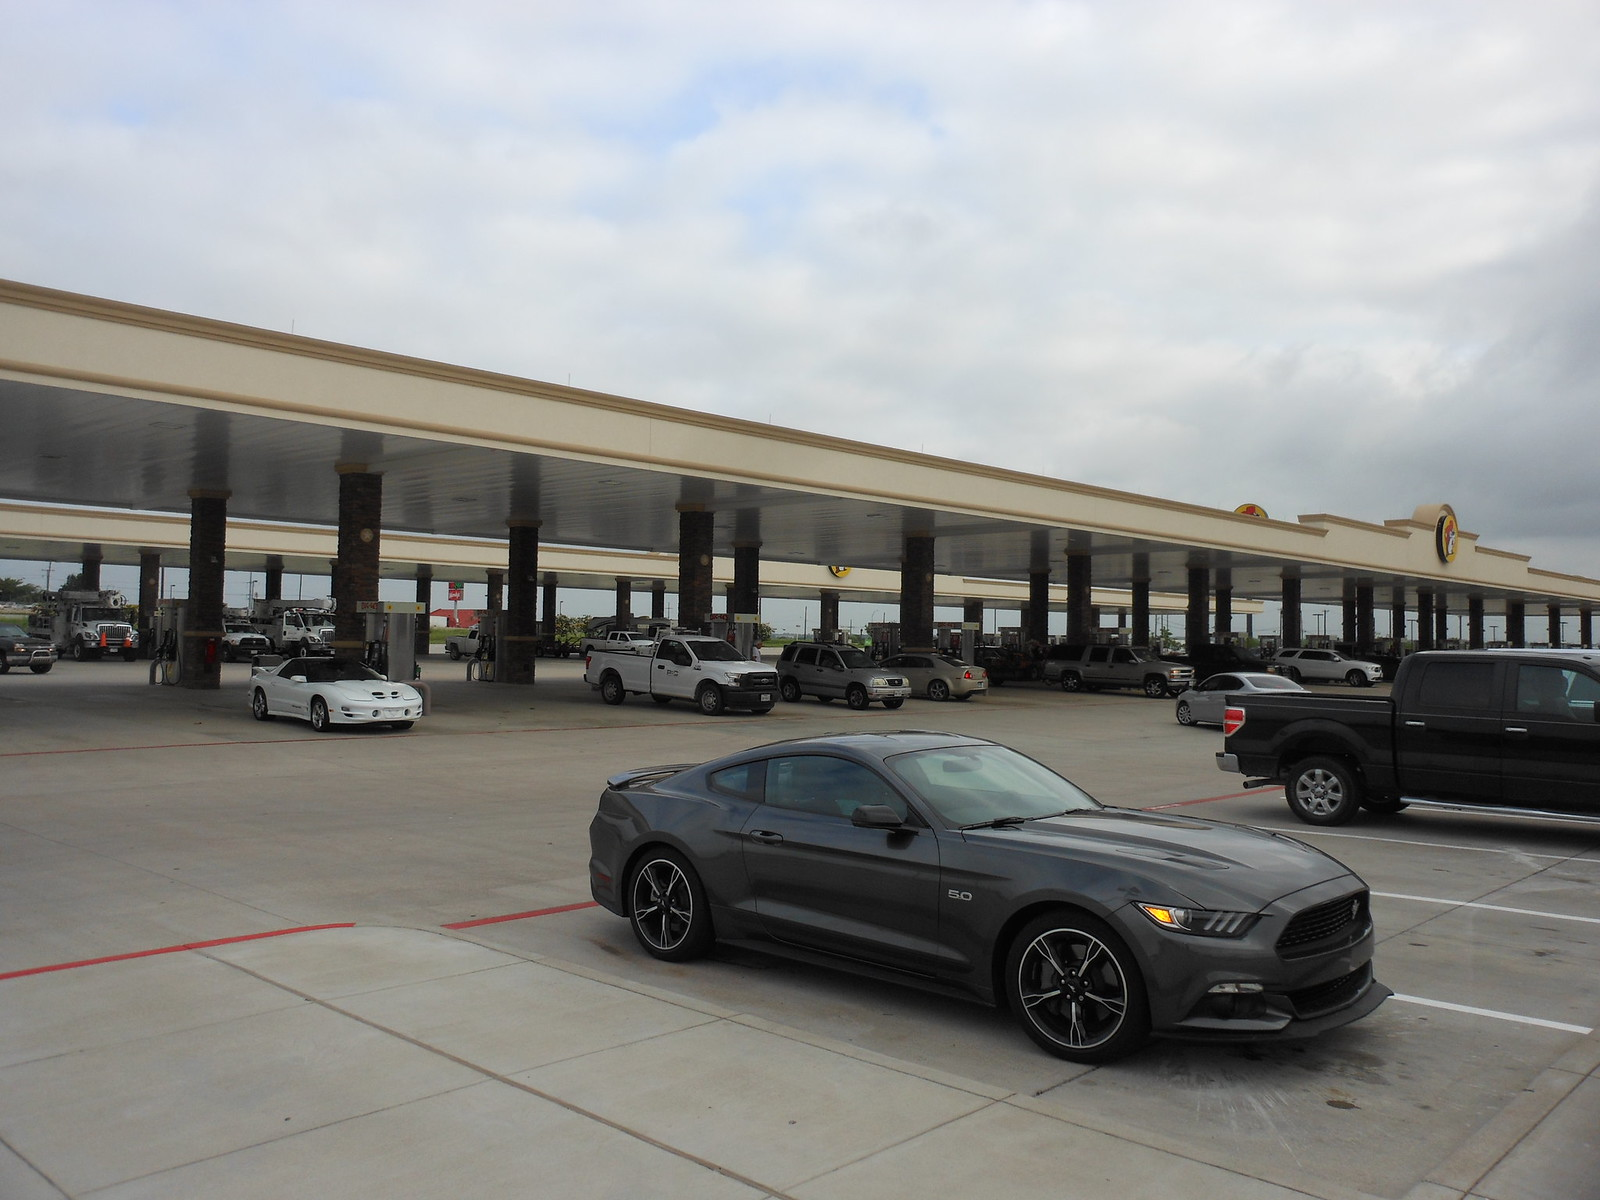 2015 Mustamg GT Rough Idle and Egine Vibration - Mustang